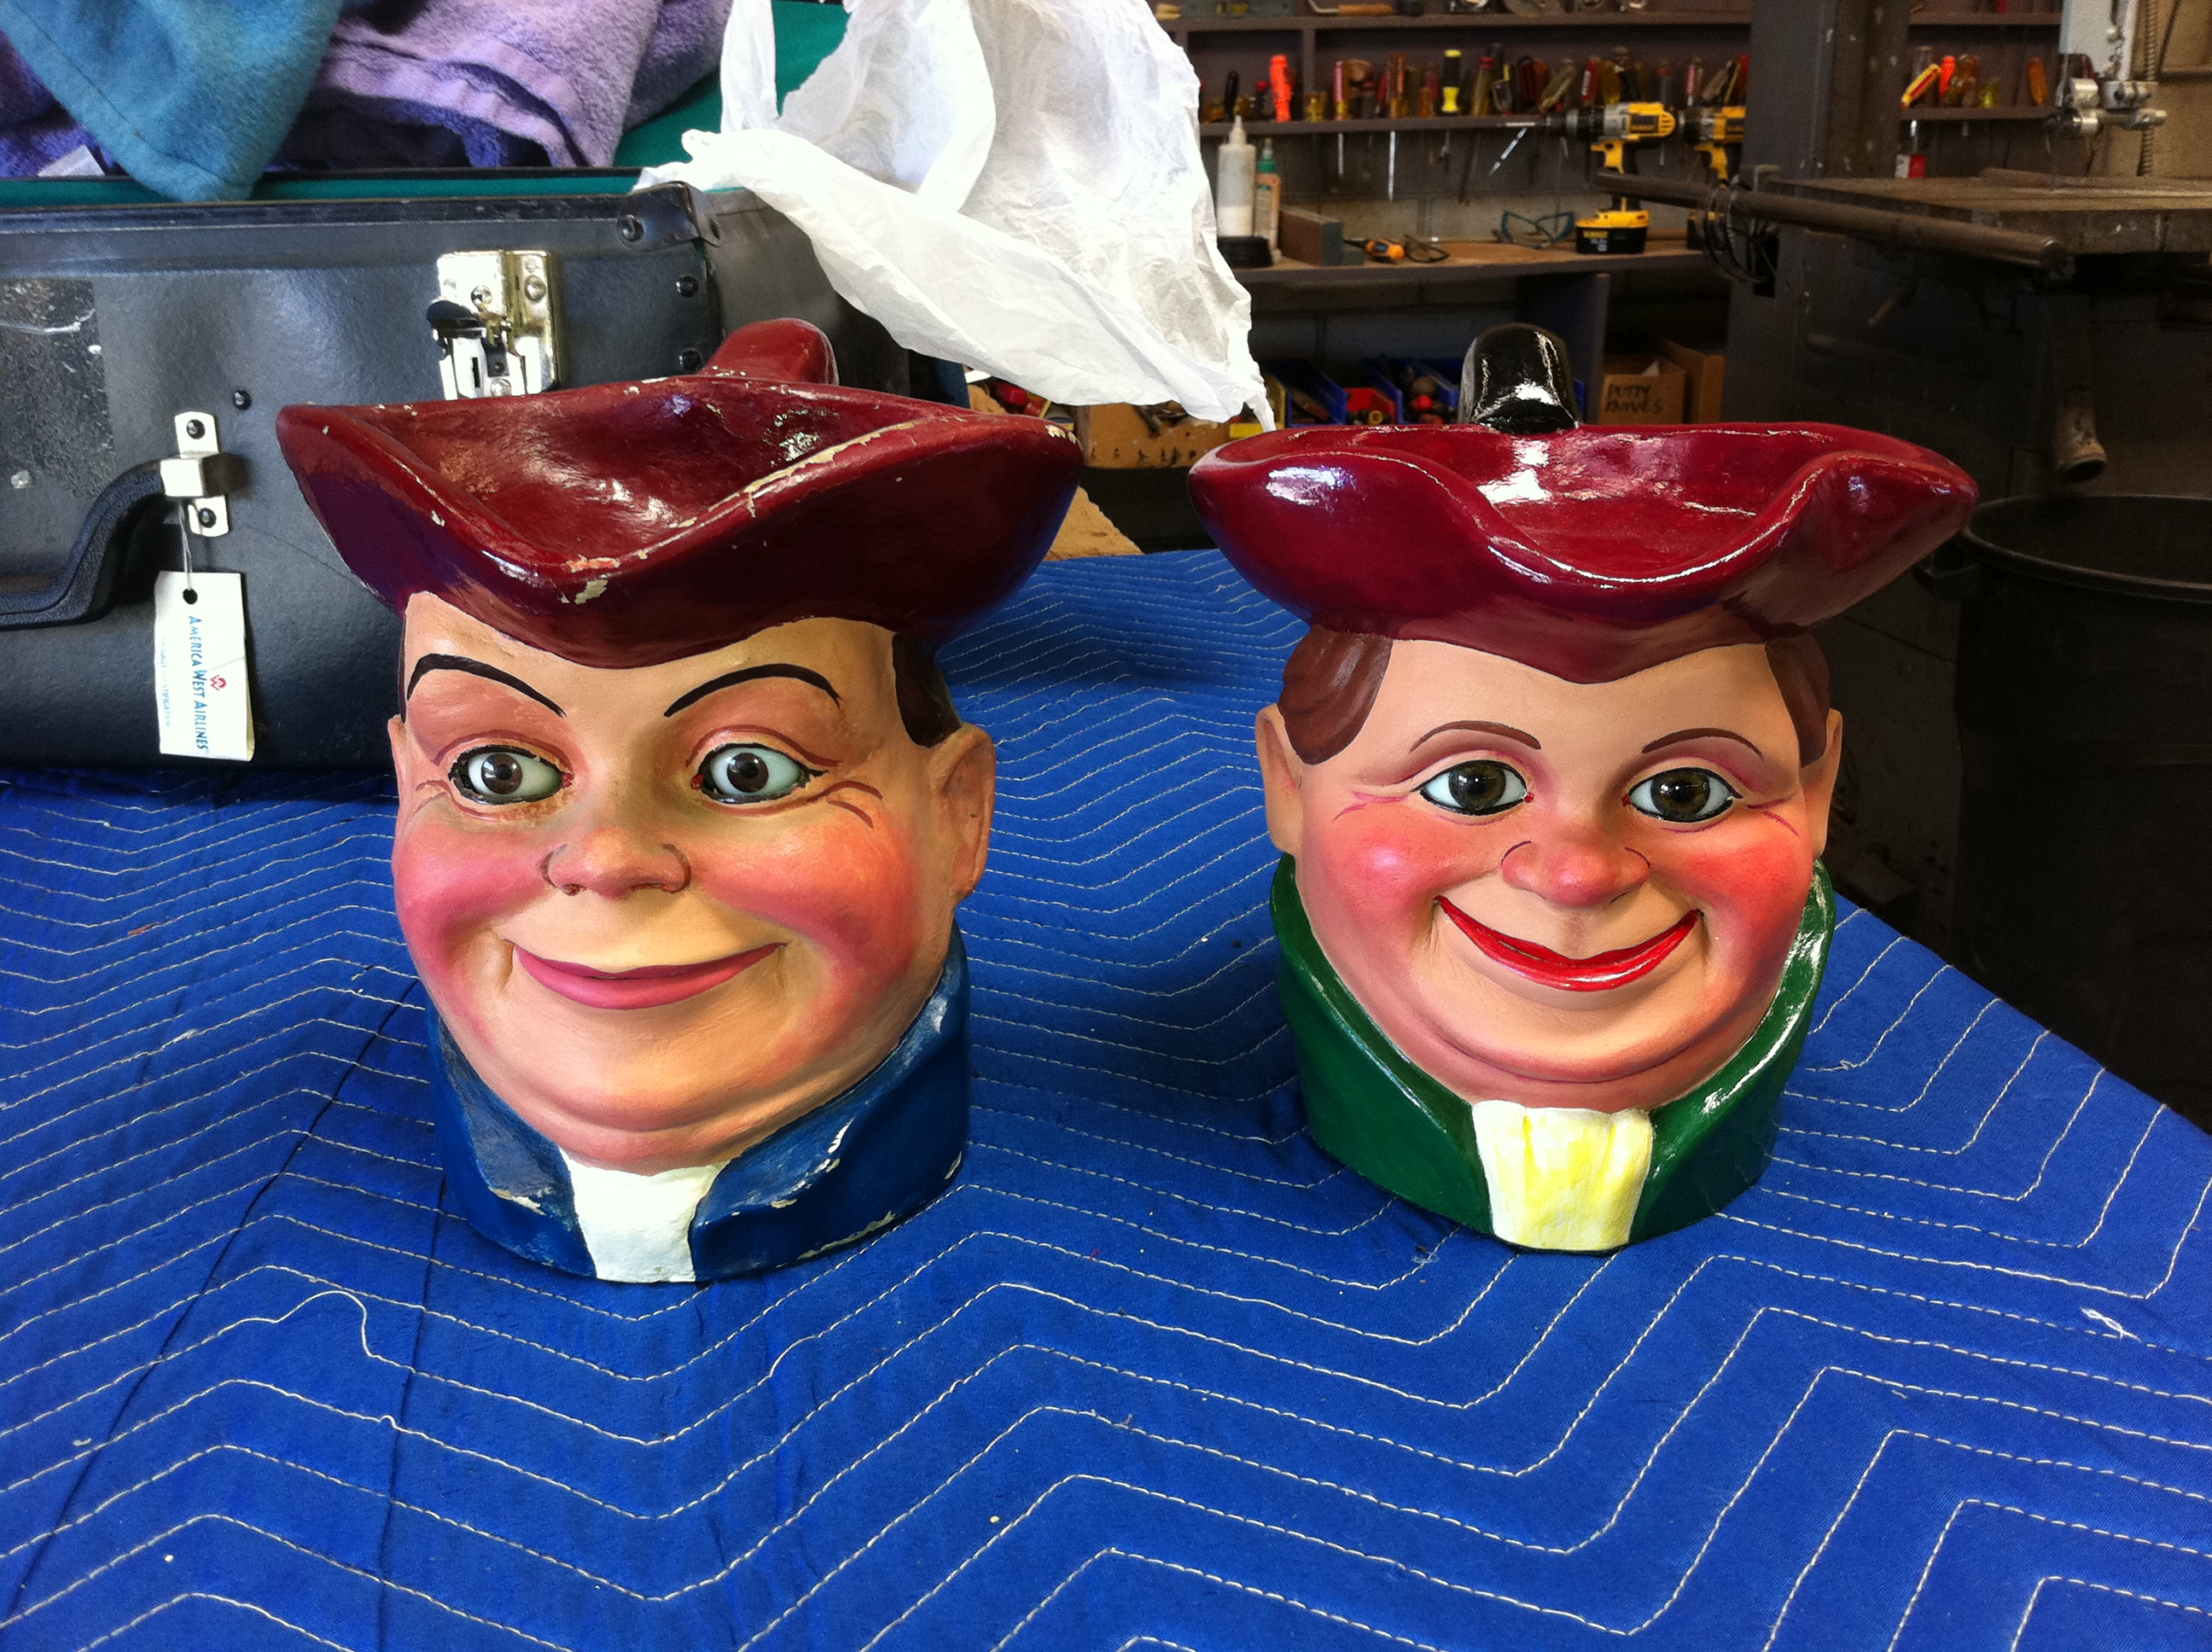 Len Insull and Geoff Felix ventriloquist toby jug